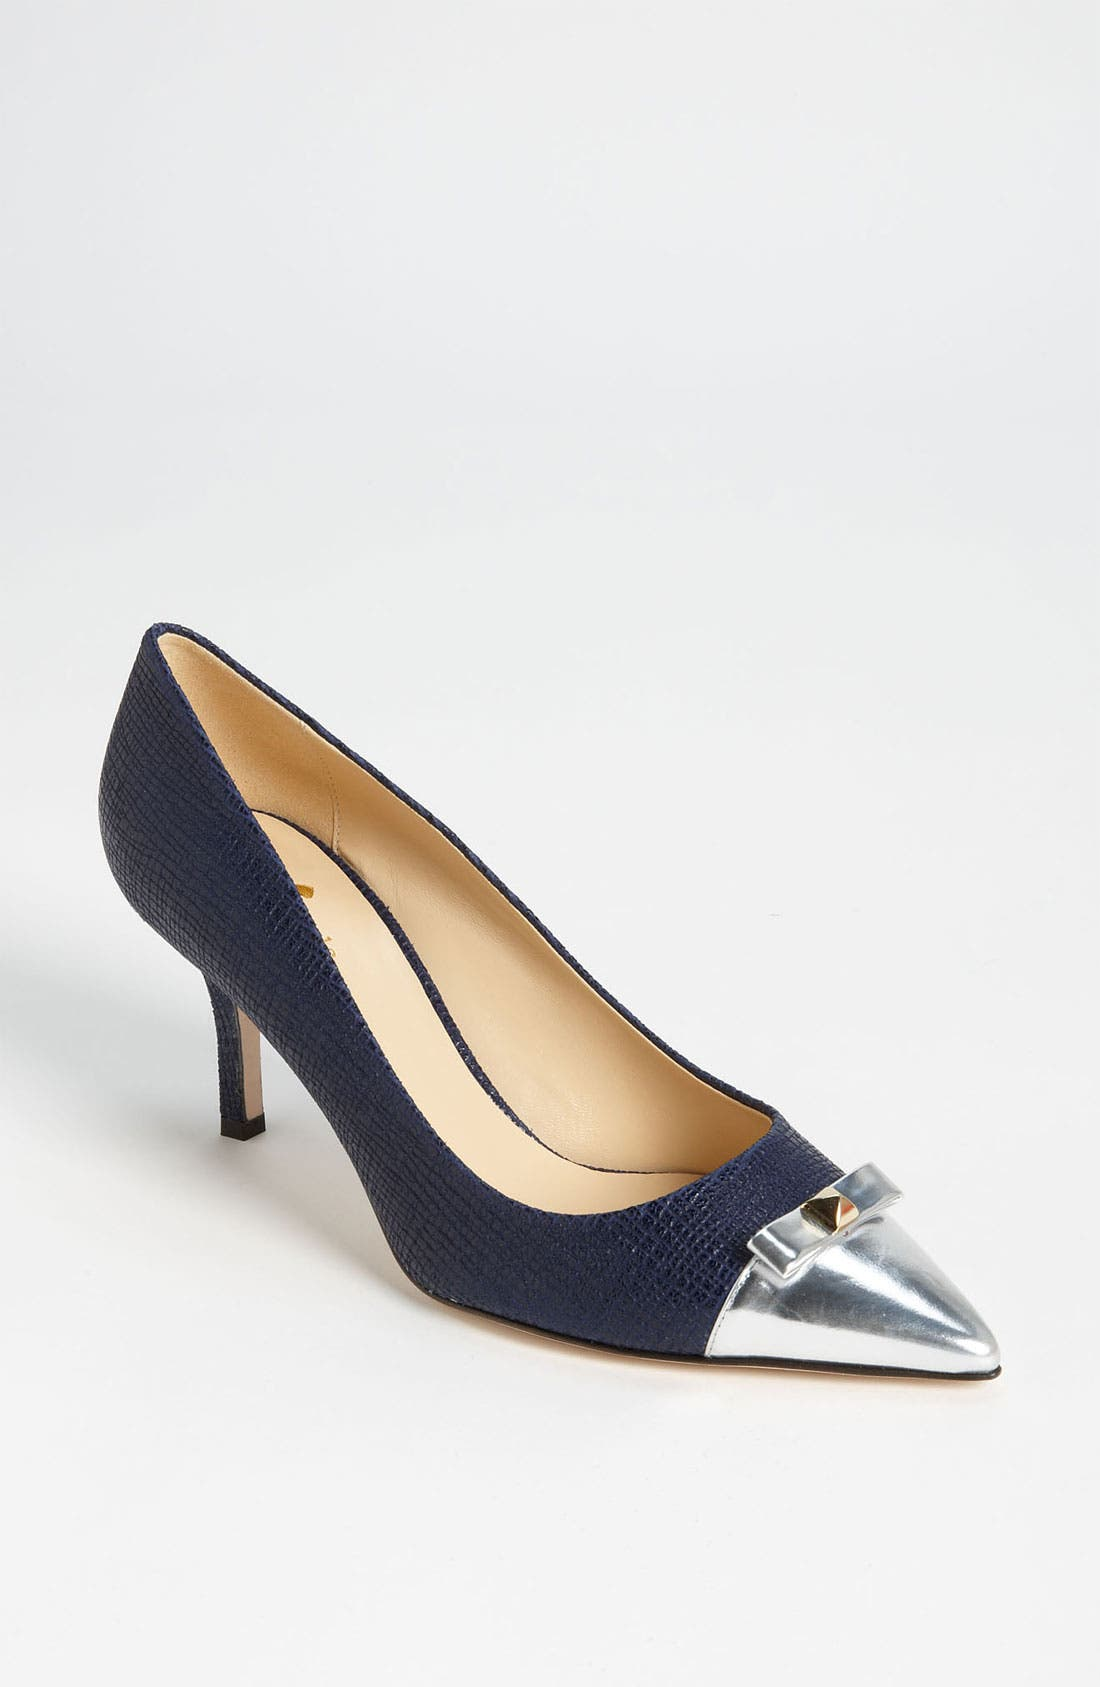 Alternate Image 1 Selected - kate spade new york 'jiji' pump